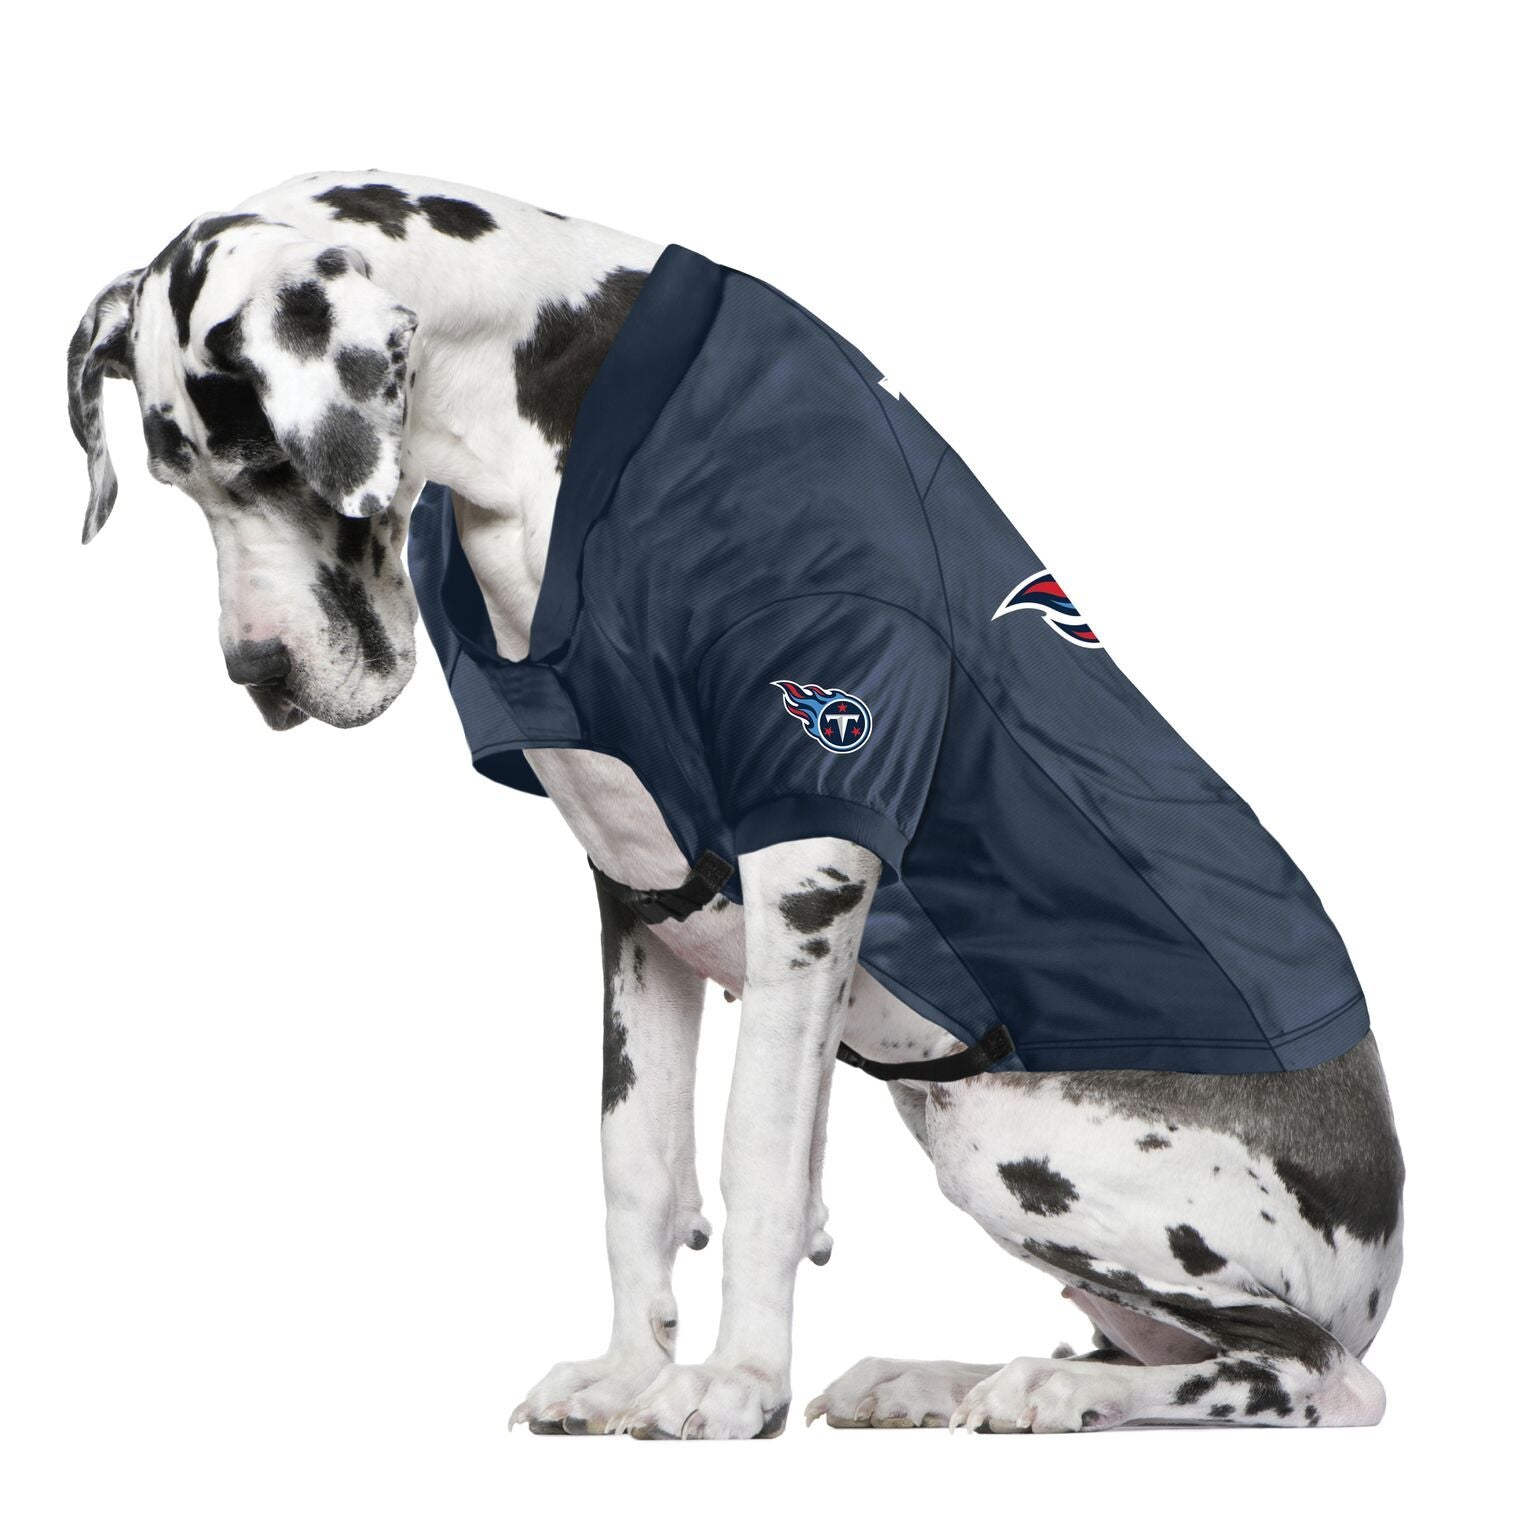 Titans Fan Jersey For Your Dog